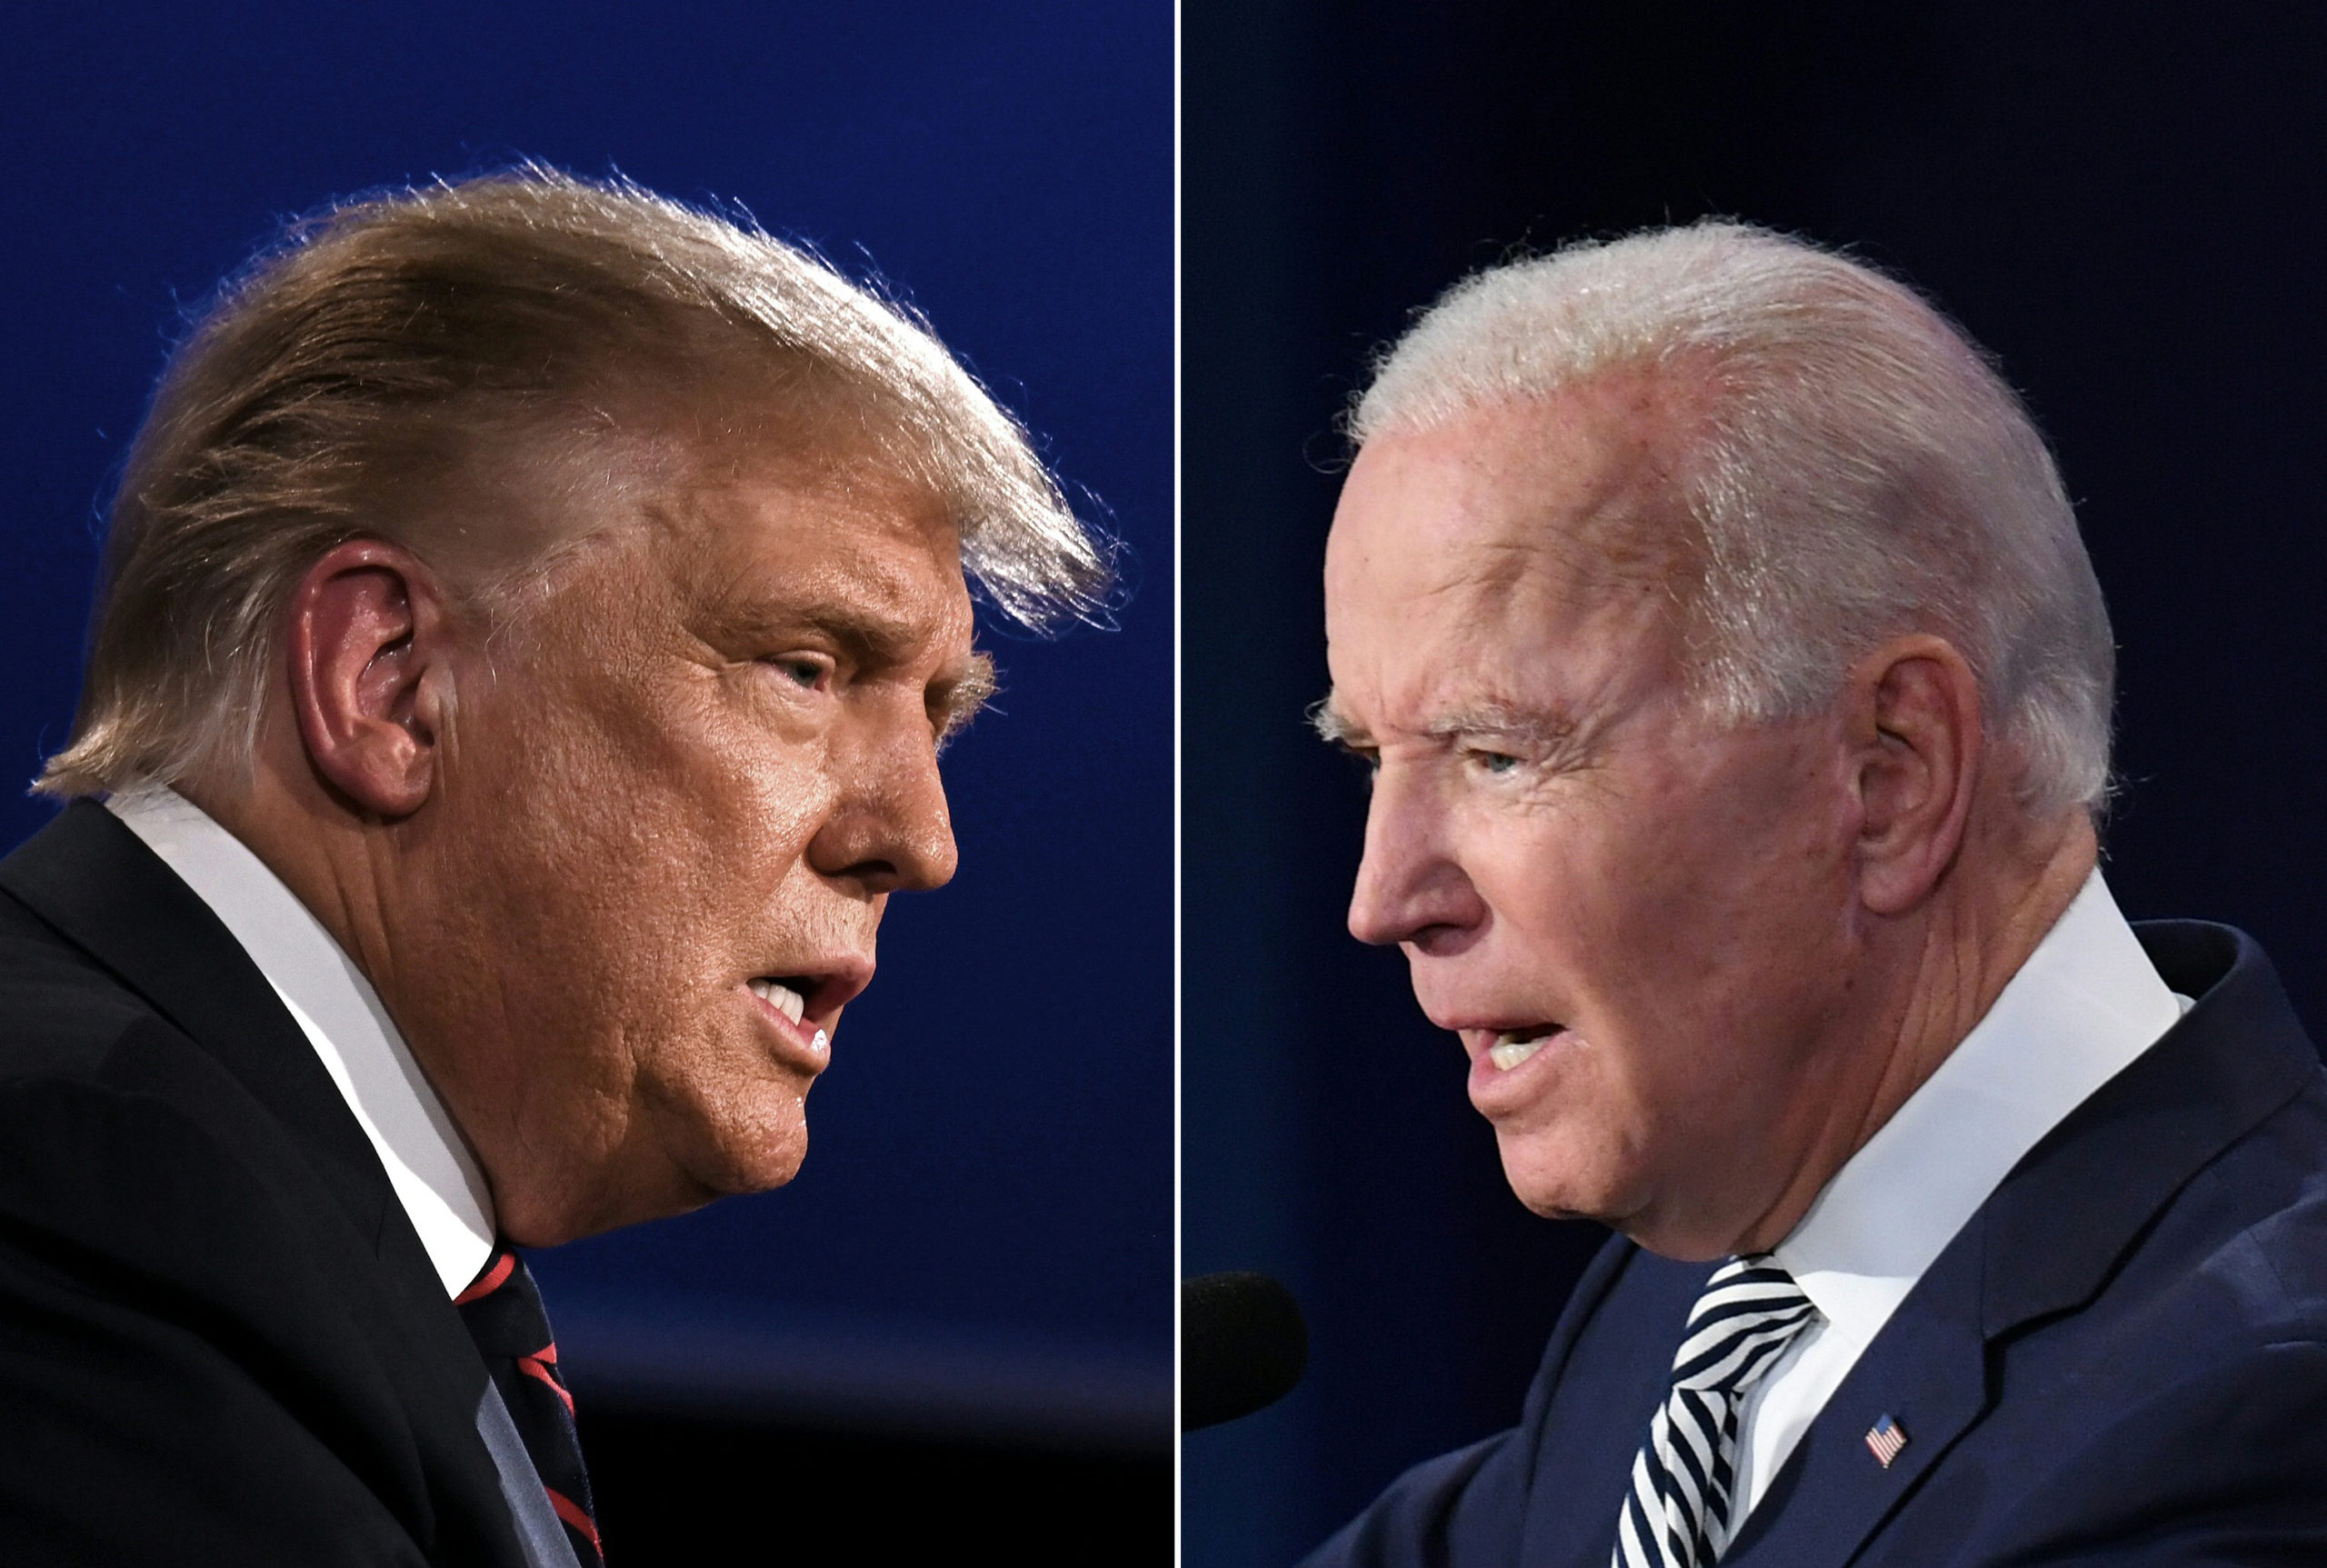 President Donald Trump (L) and Democratic Presidential candidate former Vice President Joe Biden square off during the first presidential debate at the Case Western Reserve University and Cleveland Clinic in Cleveland, Ohio on September 29, 2020. (Photo by JIM WATSON,SAUL LOEB/AFP via Getty Images)